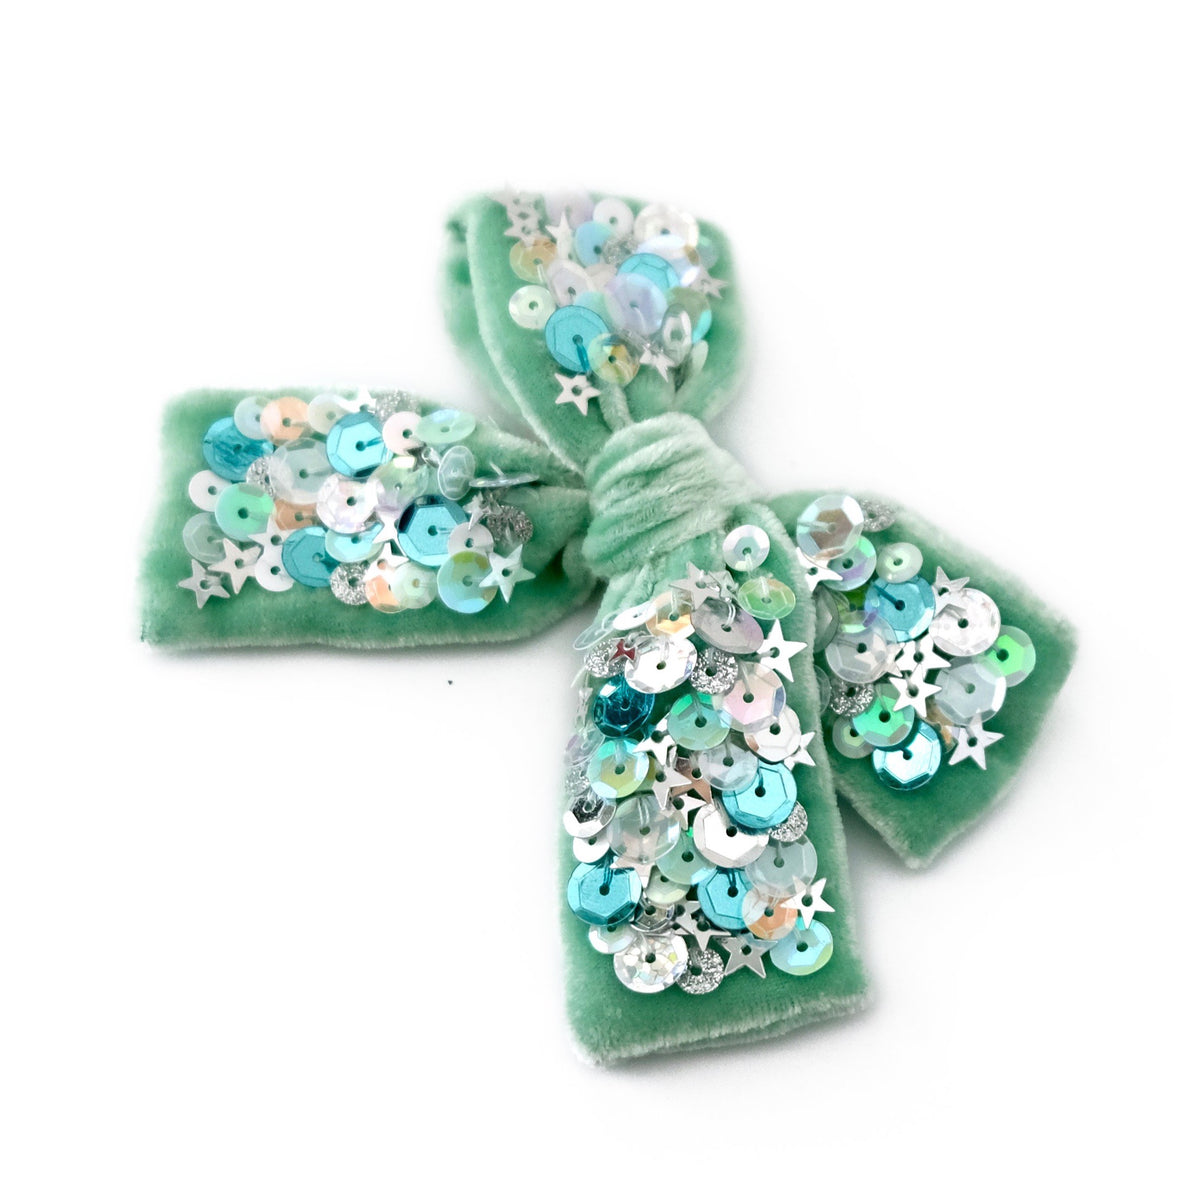 Velvet hair bow with sequin in mint green color.